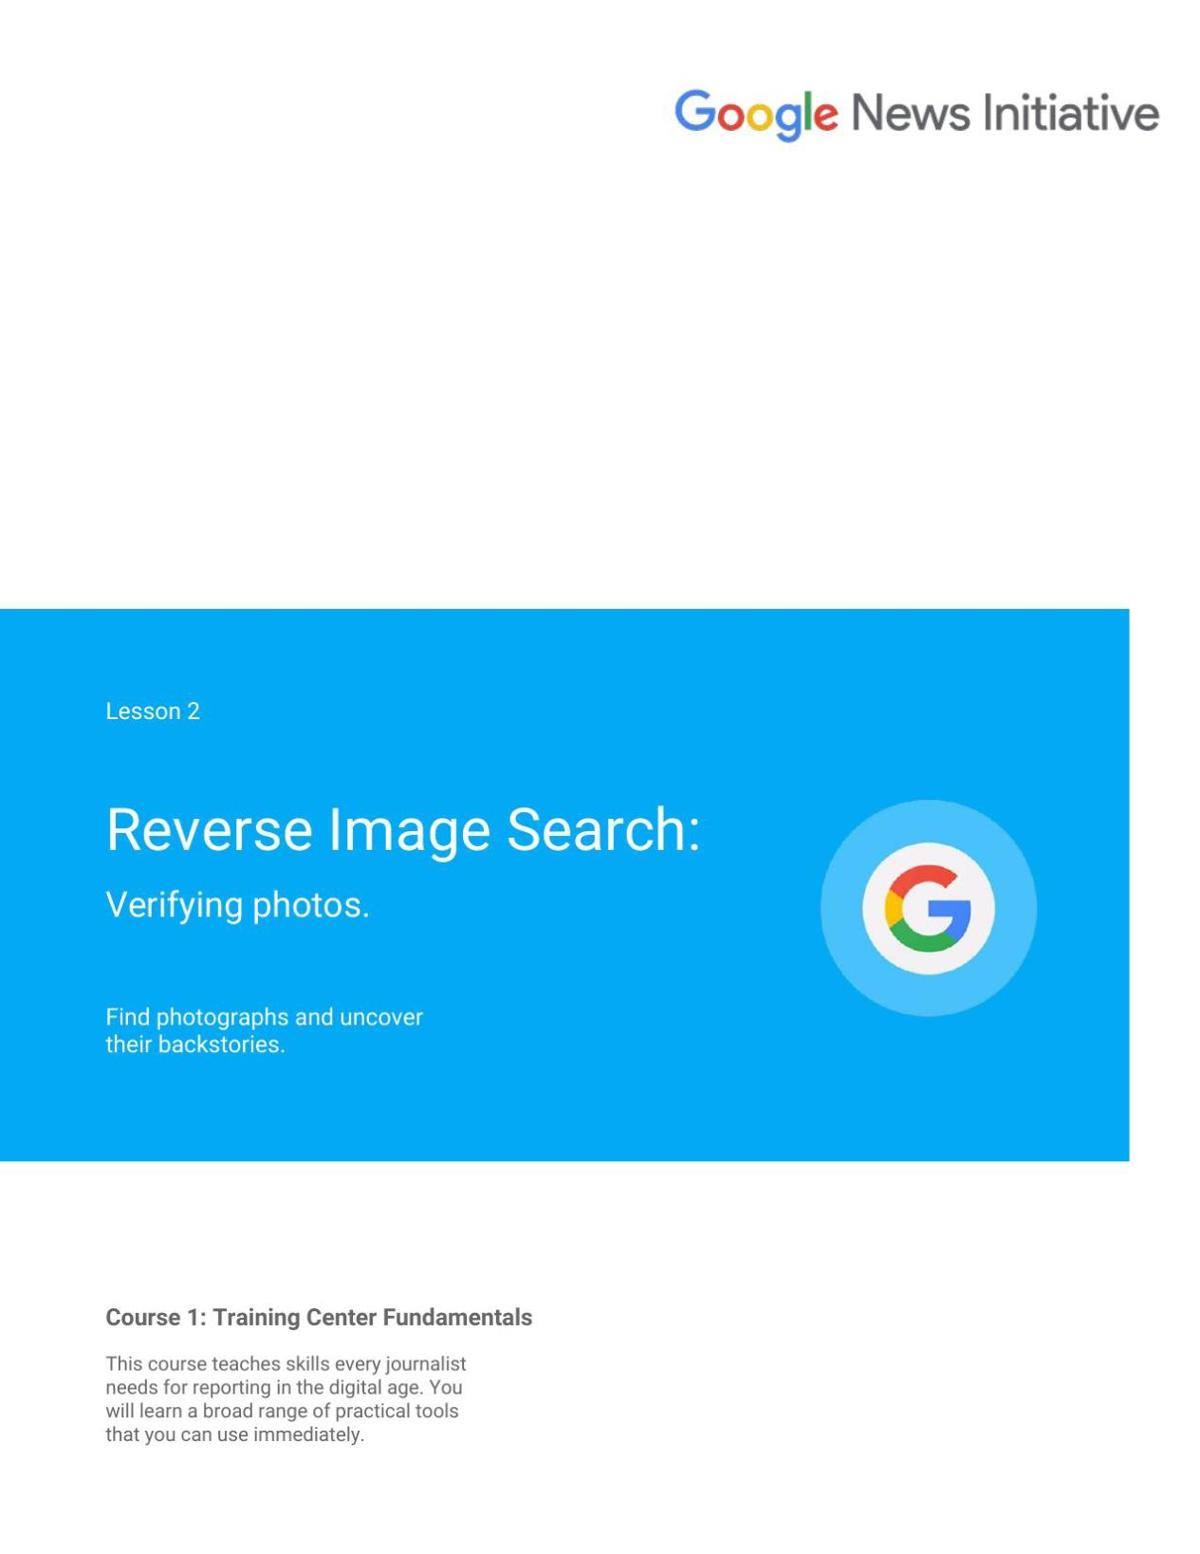 How to use reverse-image search